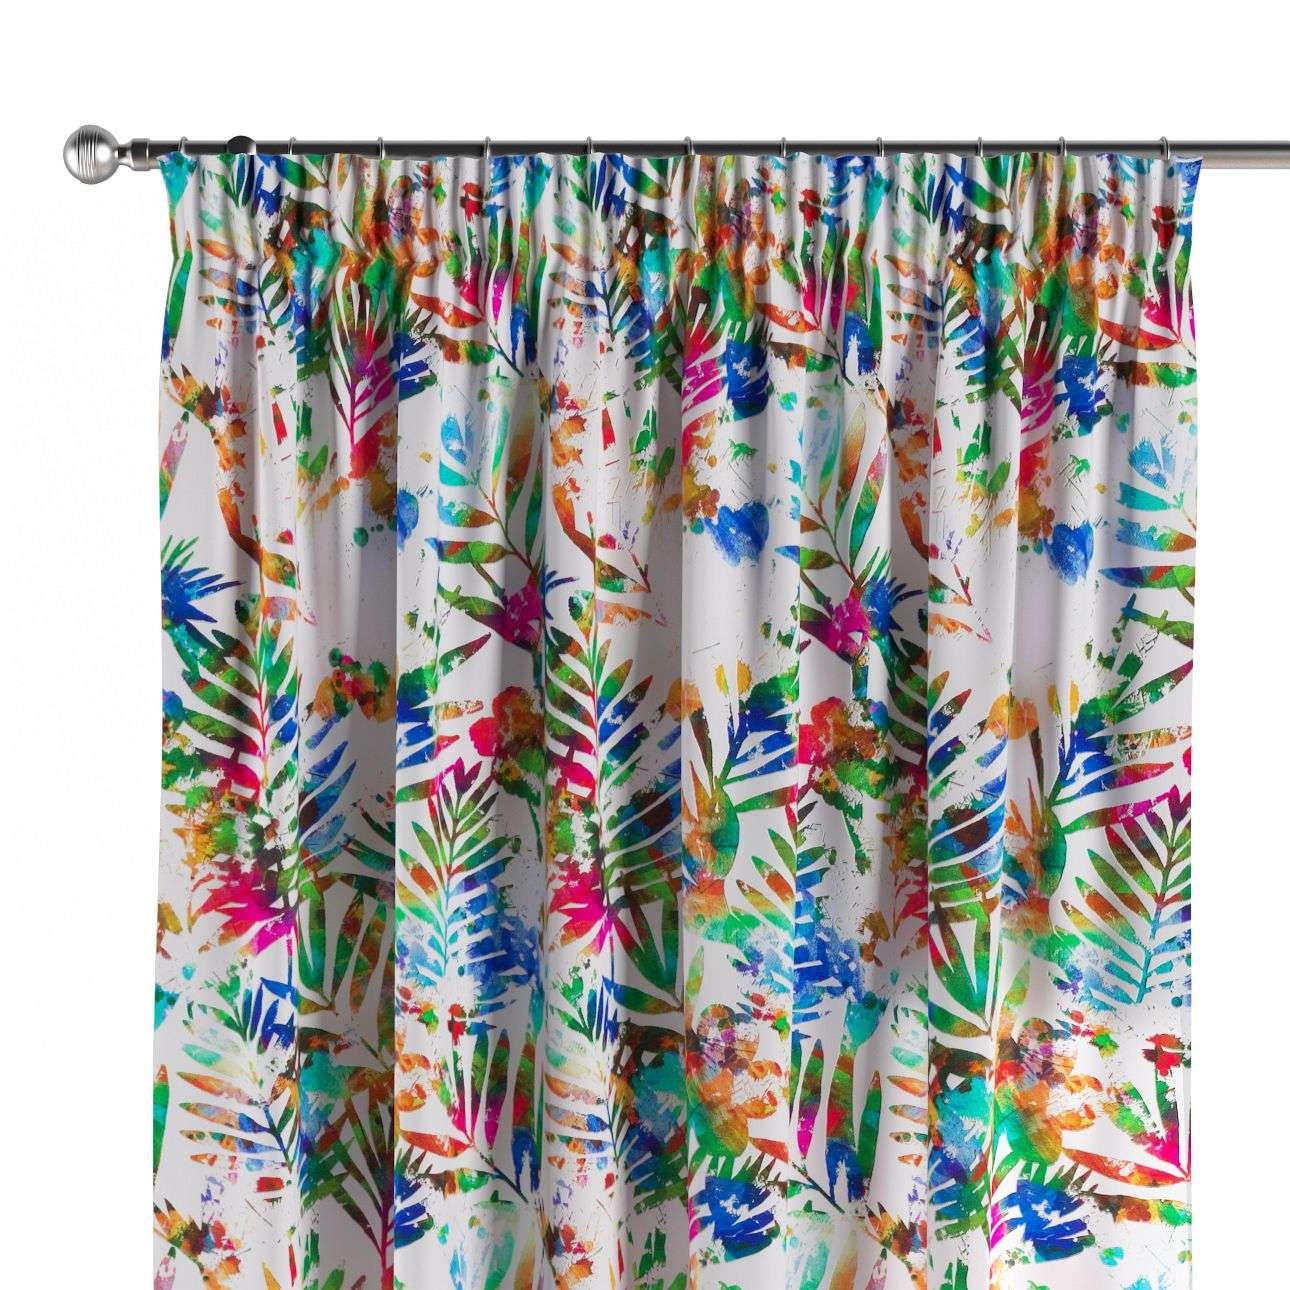 Pencil pleat curtains 130 x 260 cm (51 x 102 inch) in collection New Art, fabric: 140-22